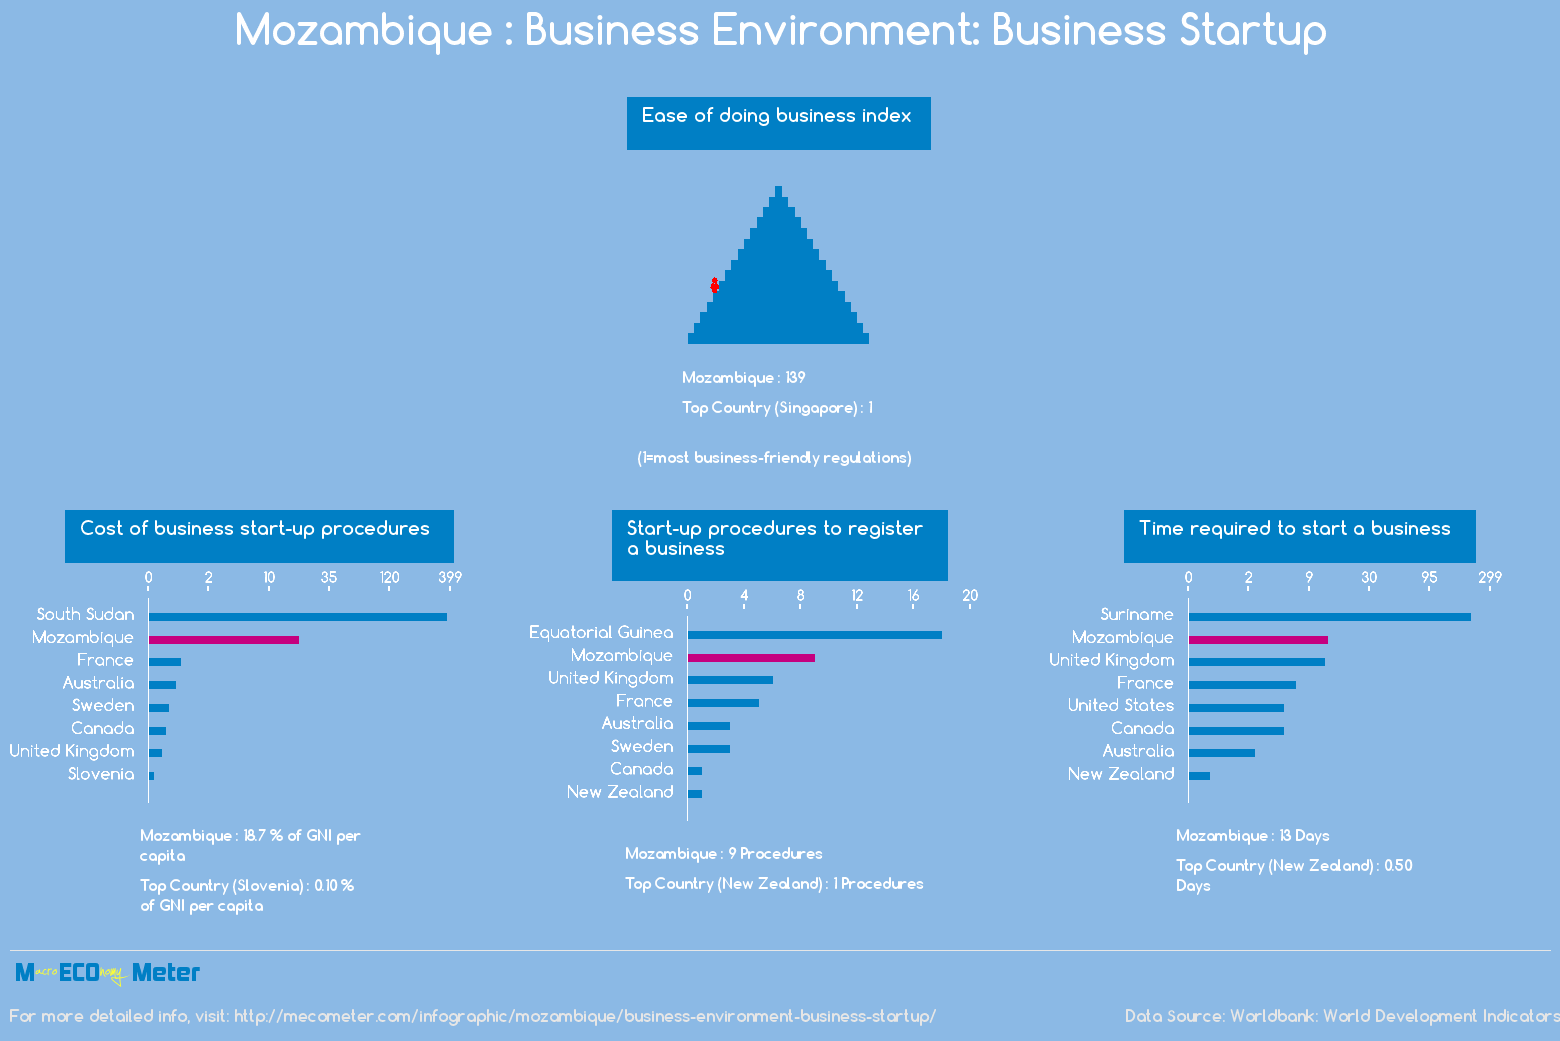 Mozambique : Business Environment: Business Startup